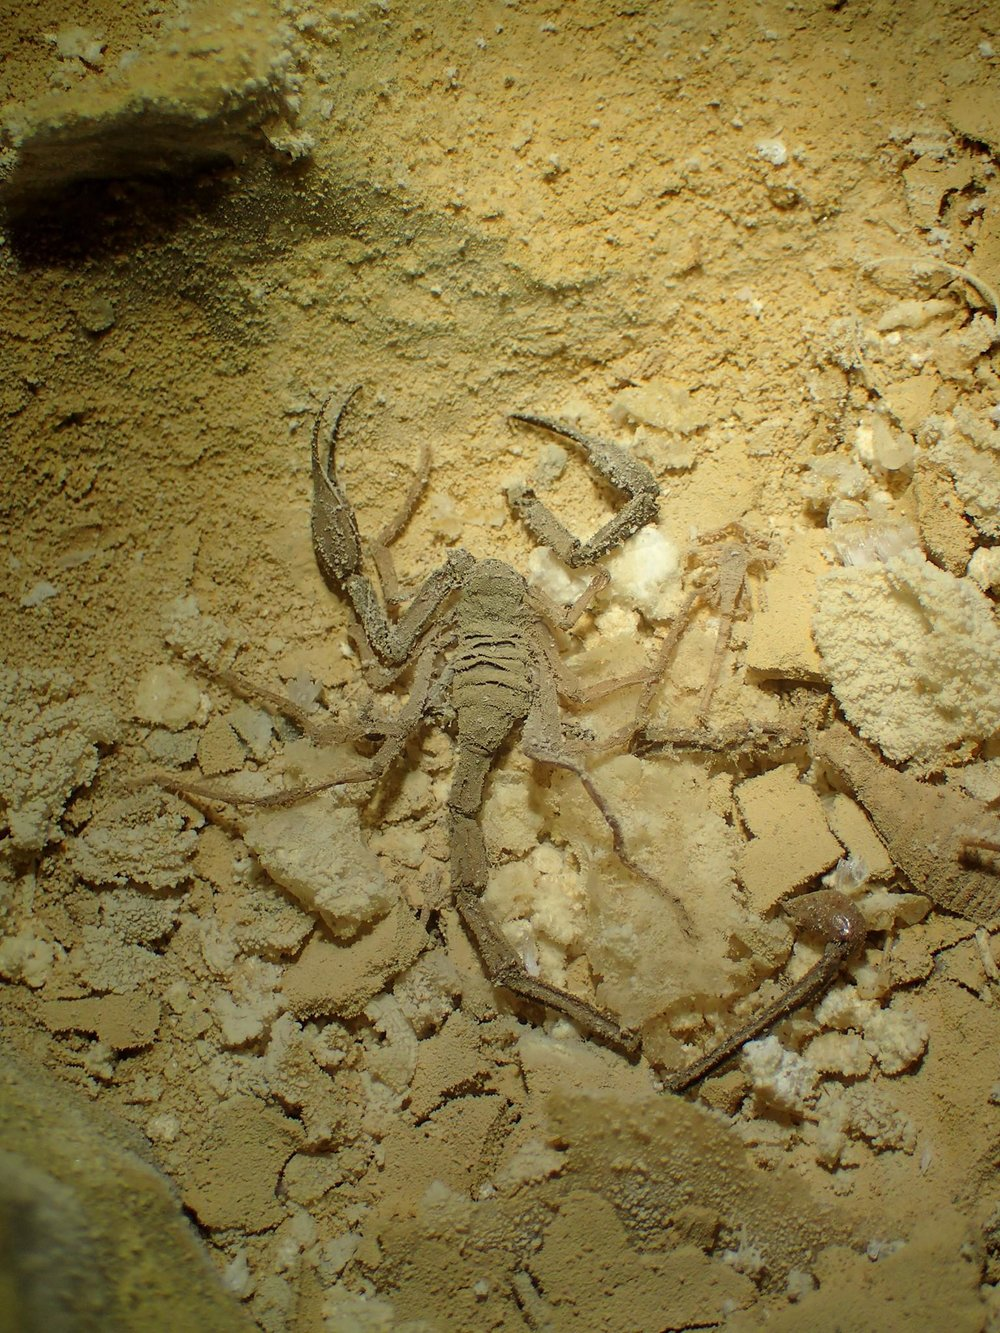 A dead scorpion (Alacran Tartarus) in a fossil cave passage known as the Dead Sea. Photo by Maxwell Fisher.